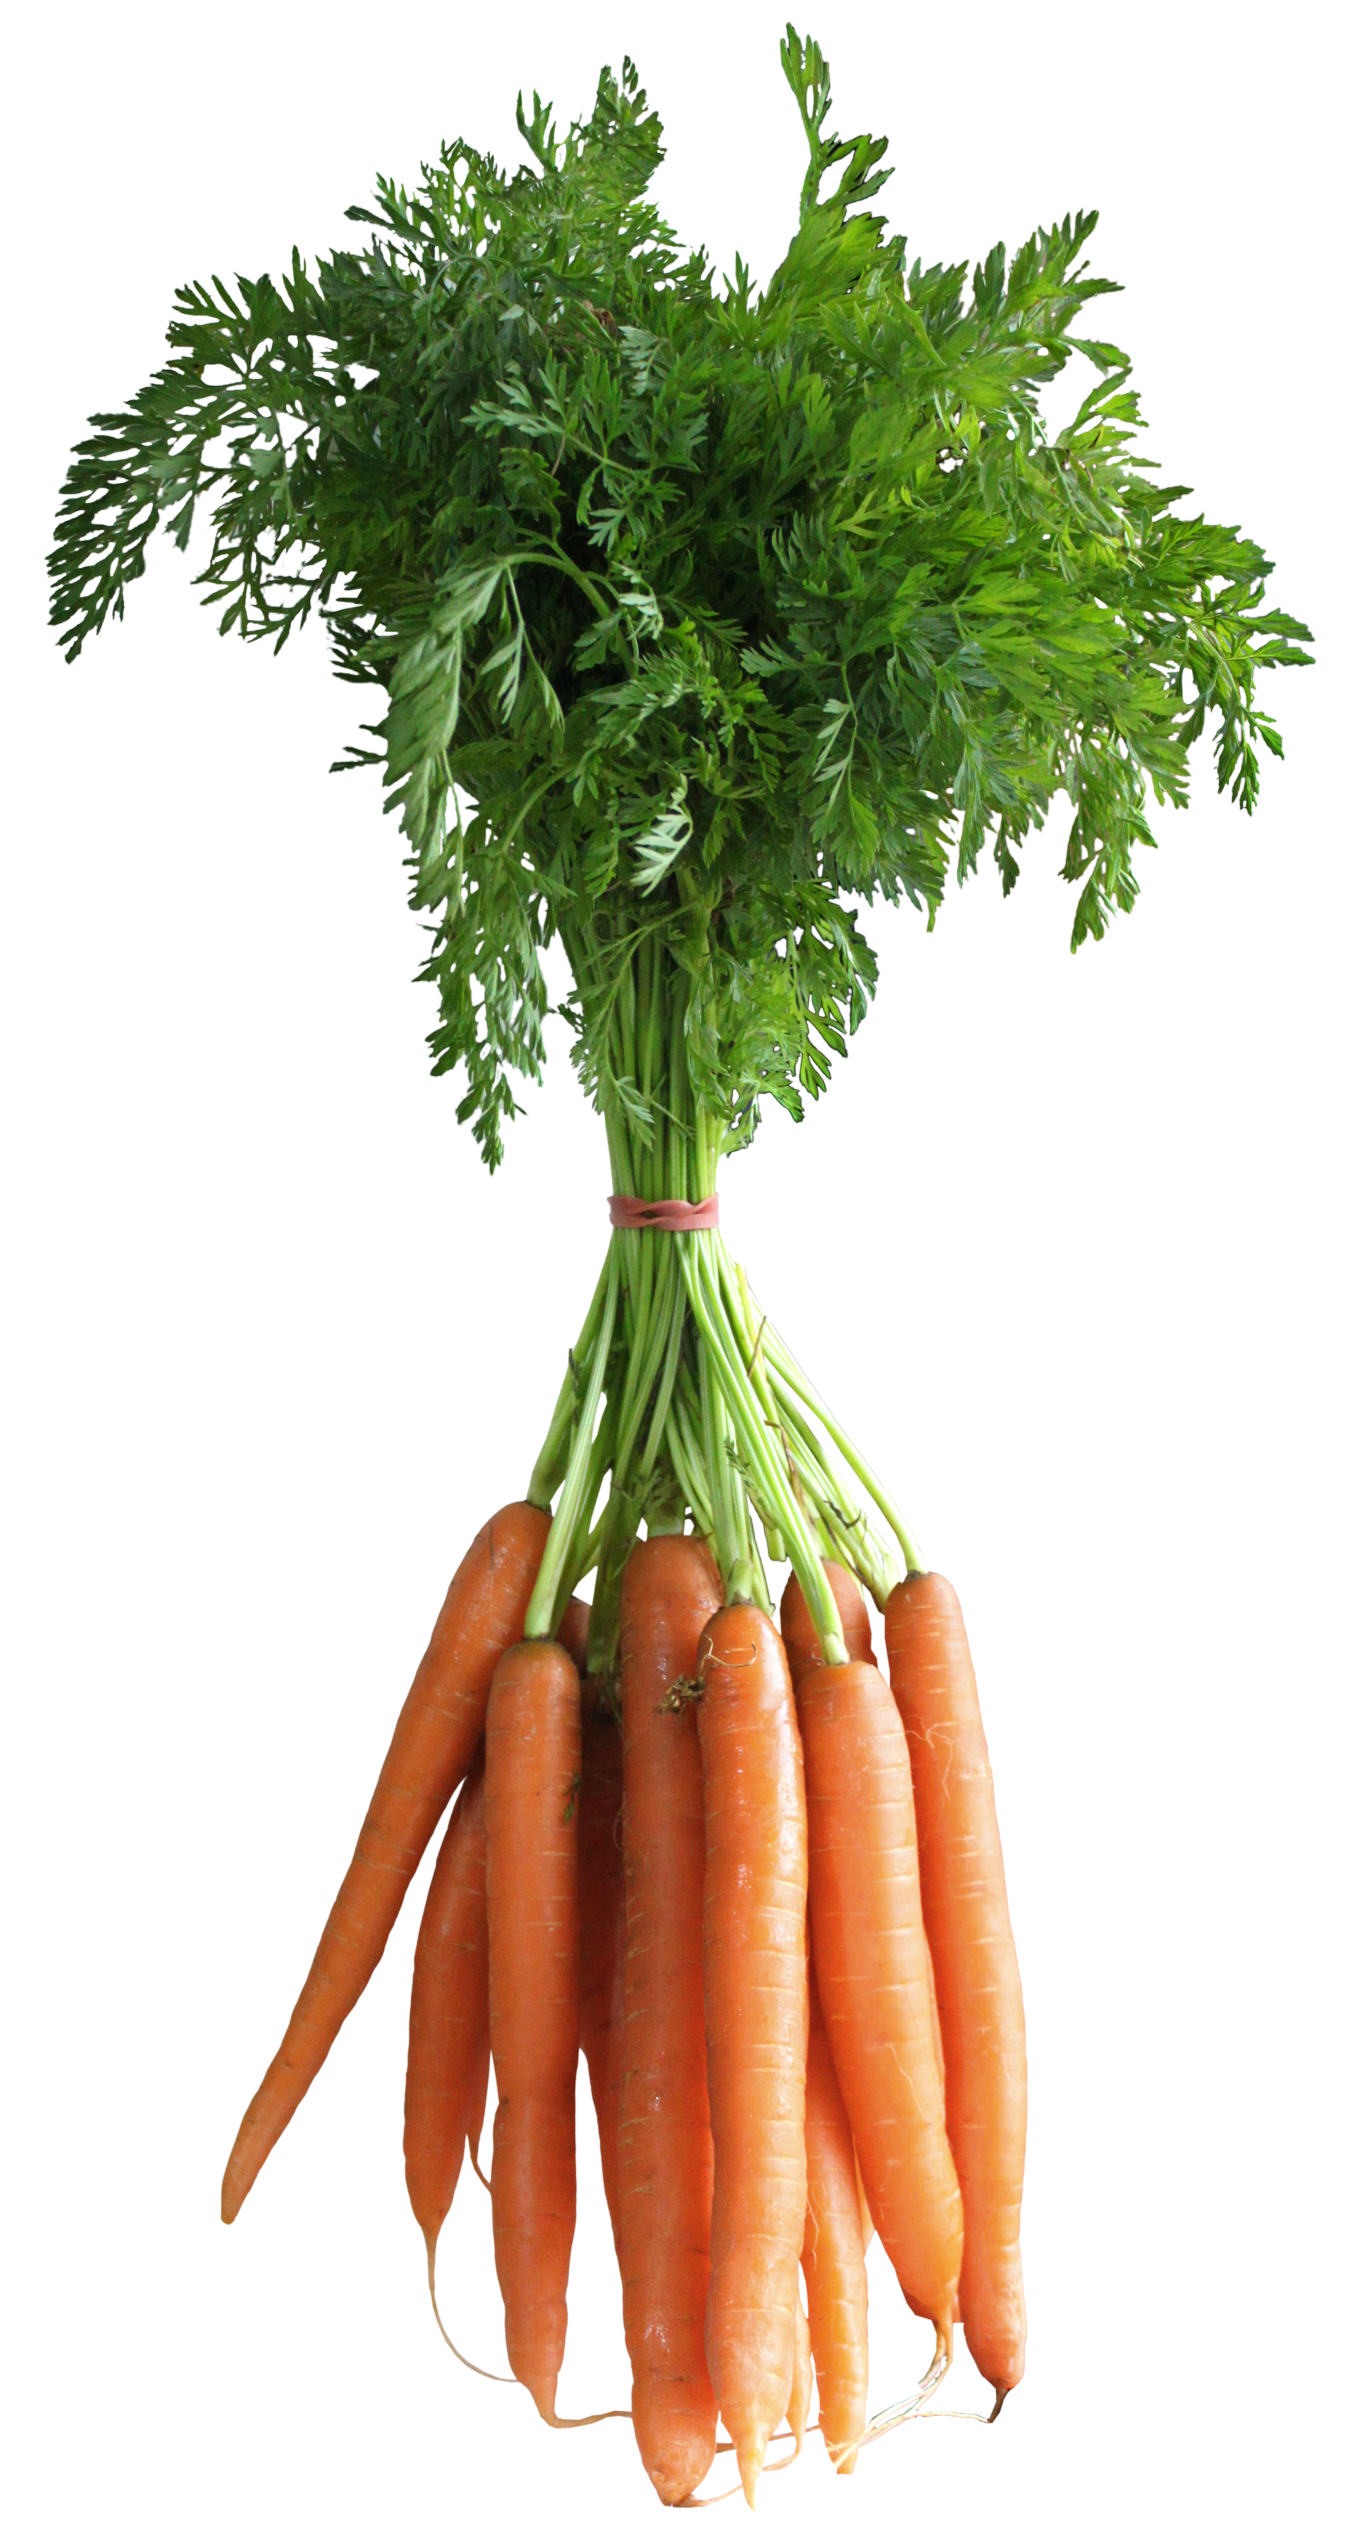 020 20 Carat Fruits And Vegetables Images Carrots Vegetable Pictures